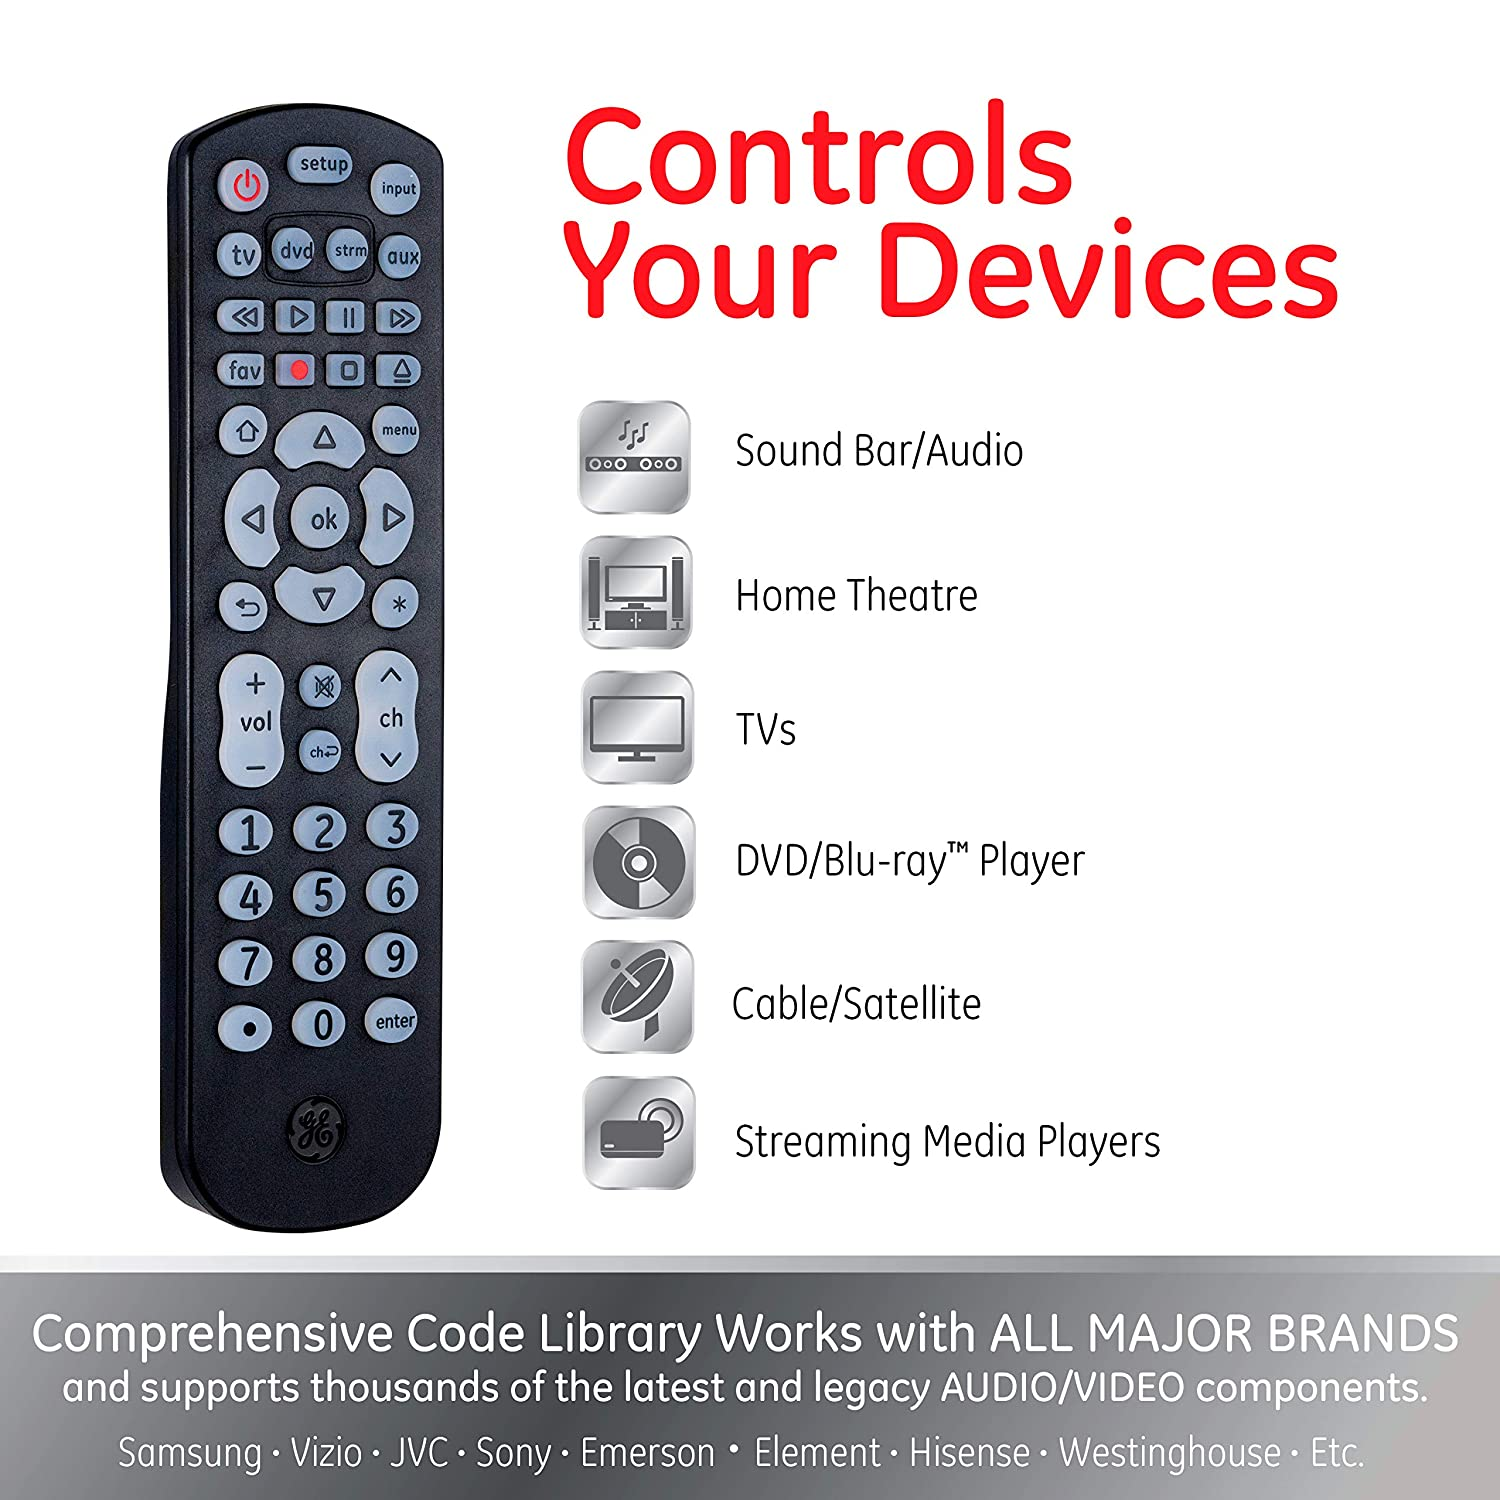 GE Universal Remote Control, Backlit, for Samsung, Vizio, Lg, Sony, Sharp,  Roku, Apple TV, RCA, Panasonic, Smart TVs, Streaming Players, Blu-Ray, DVD,